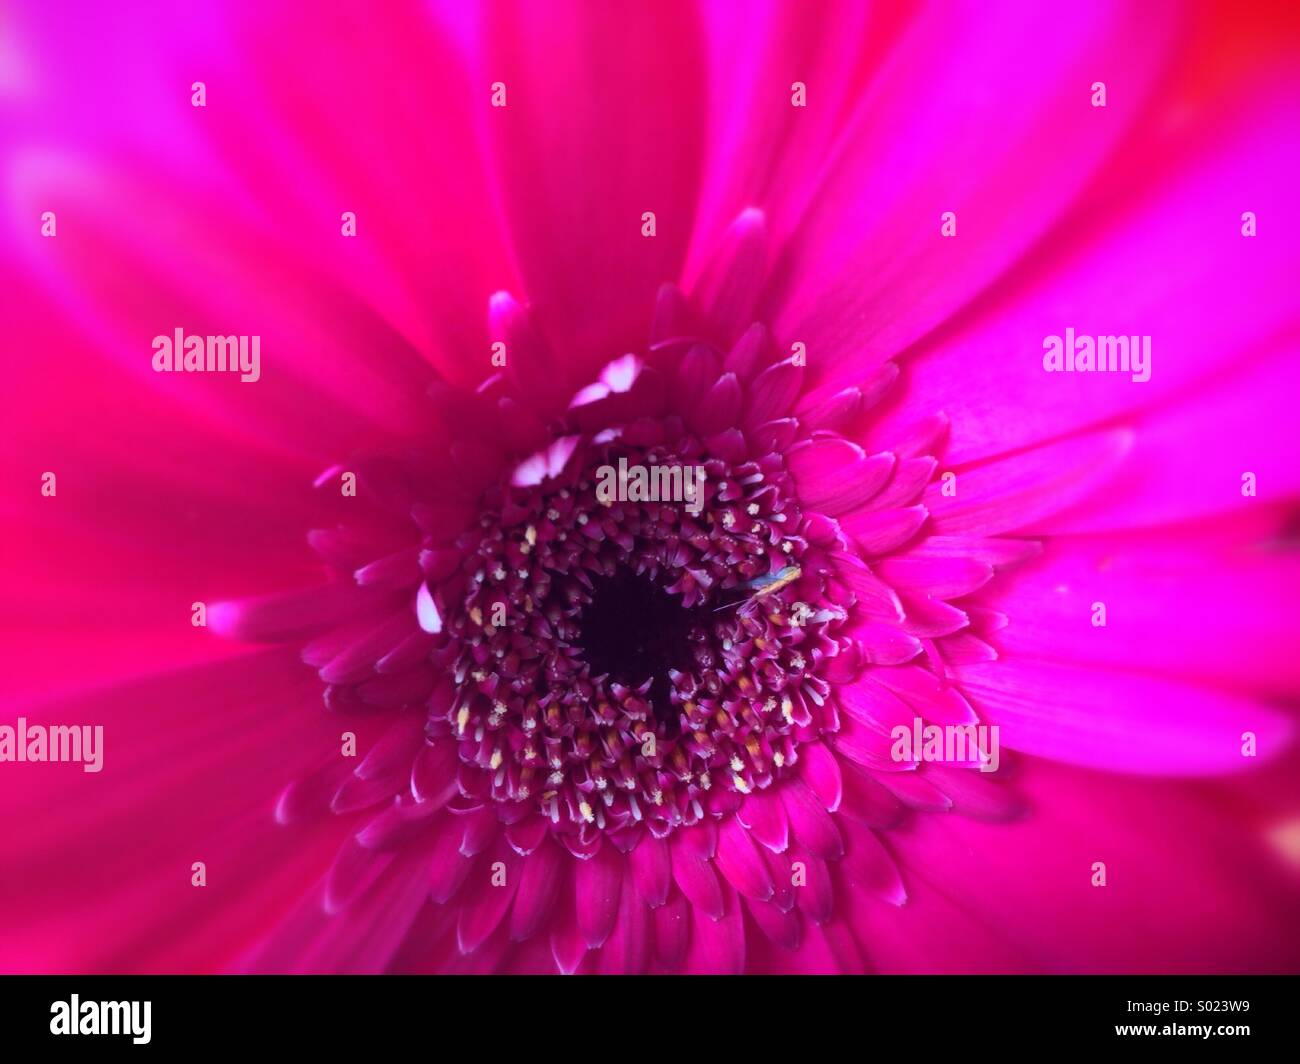 Close-up of pink flower Photo Stock